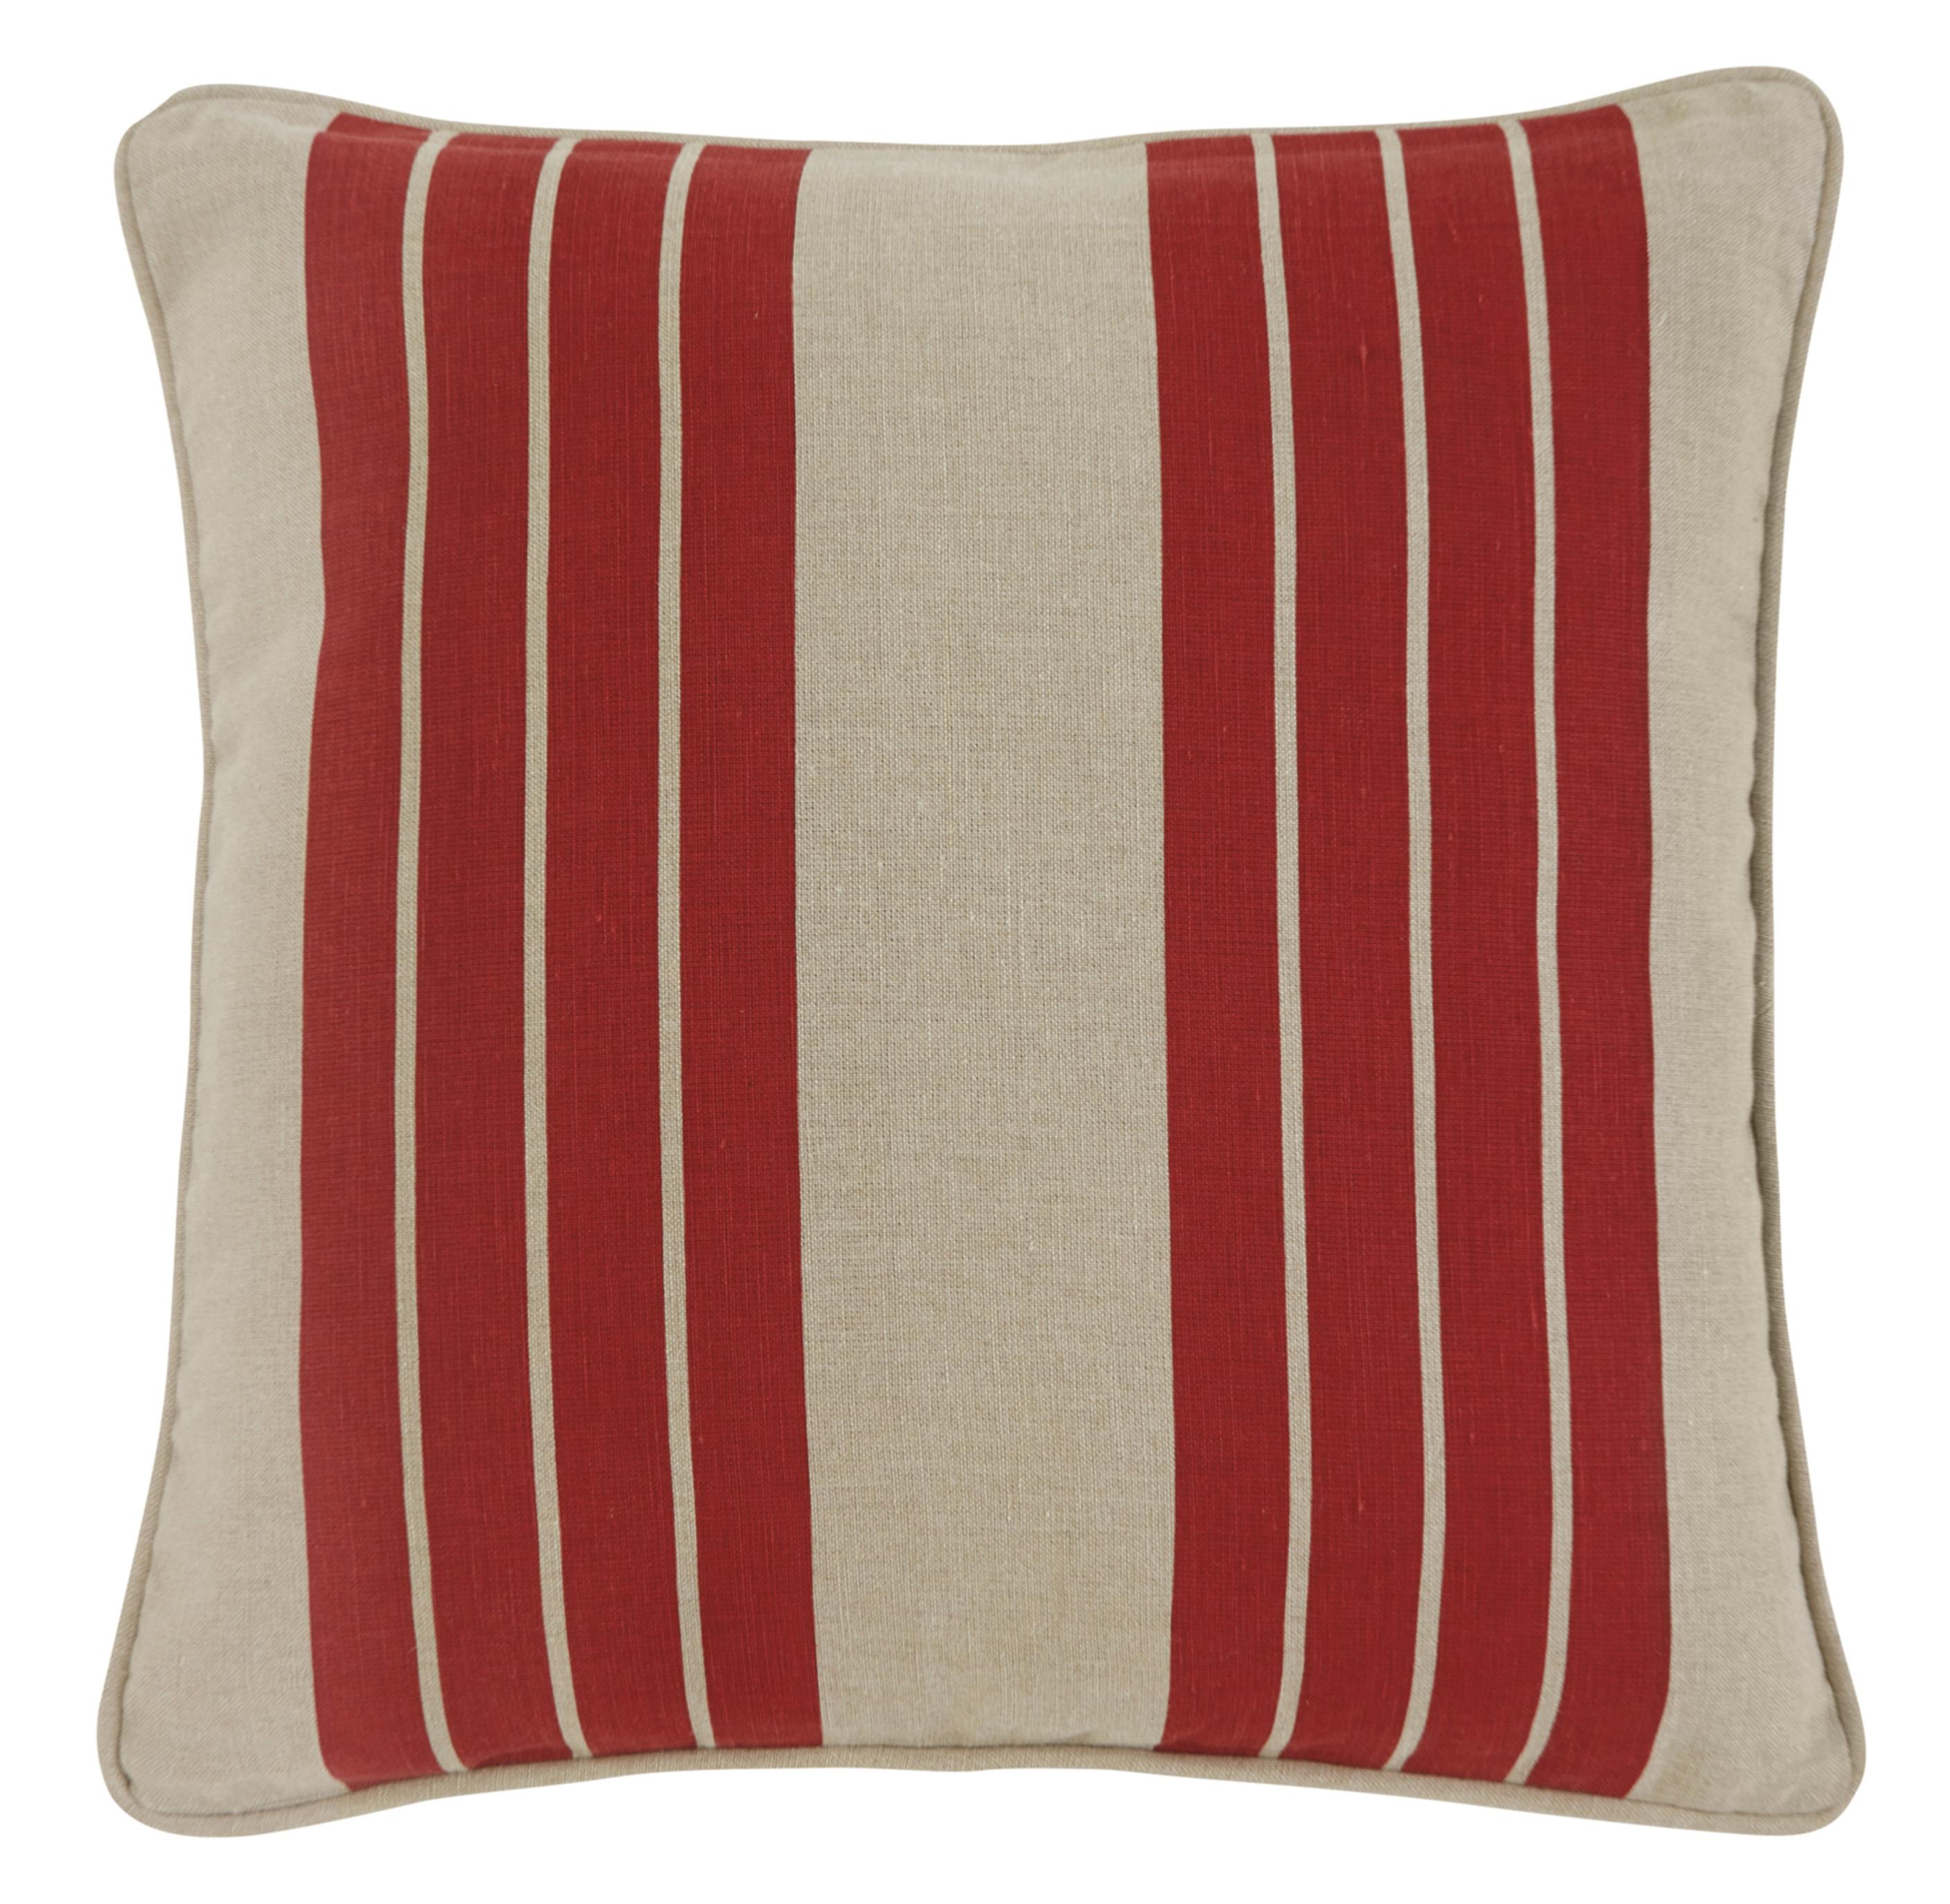 Signature Design by Ashley Pillows Striped - Red Pillow Cover - Item Number: A1000337P